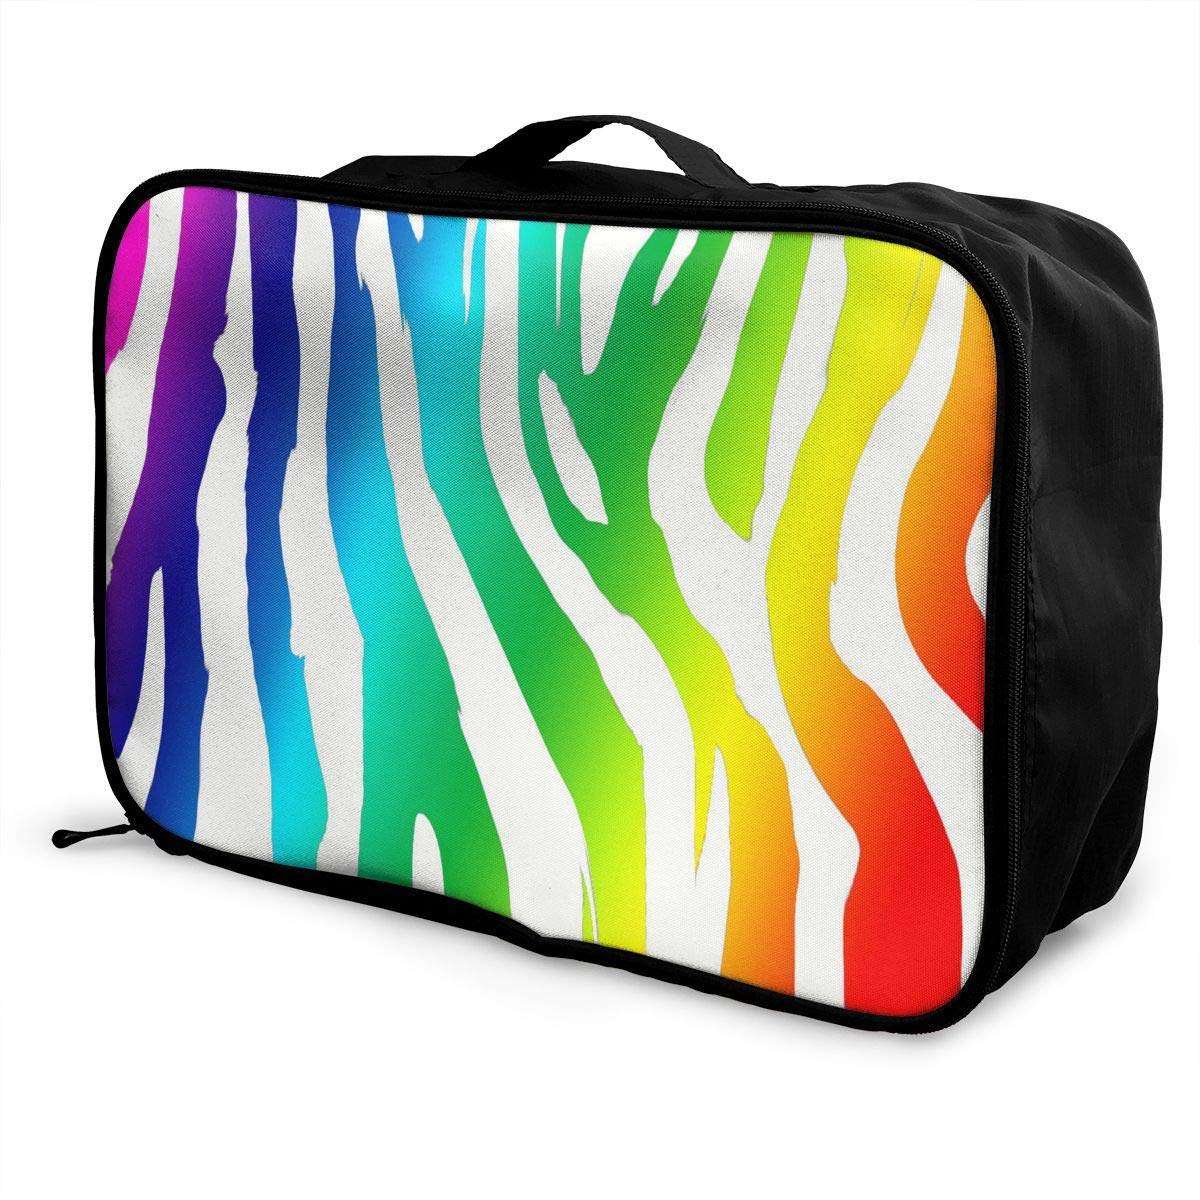 Travel Bags Peacock Feathers Portable Tote Trolley Handle Luggage Bag